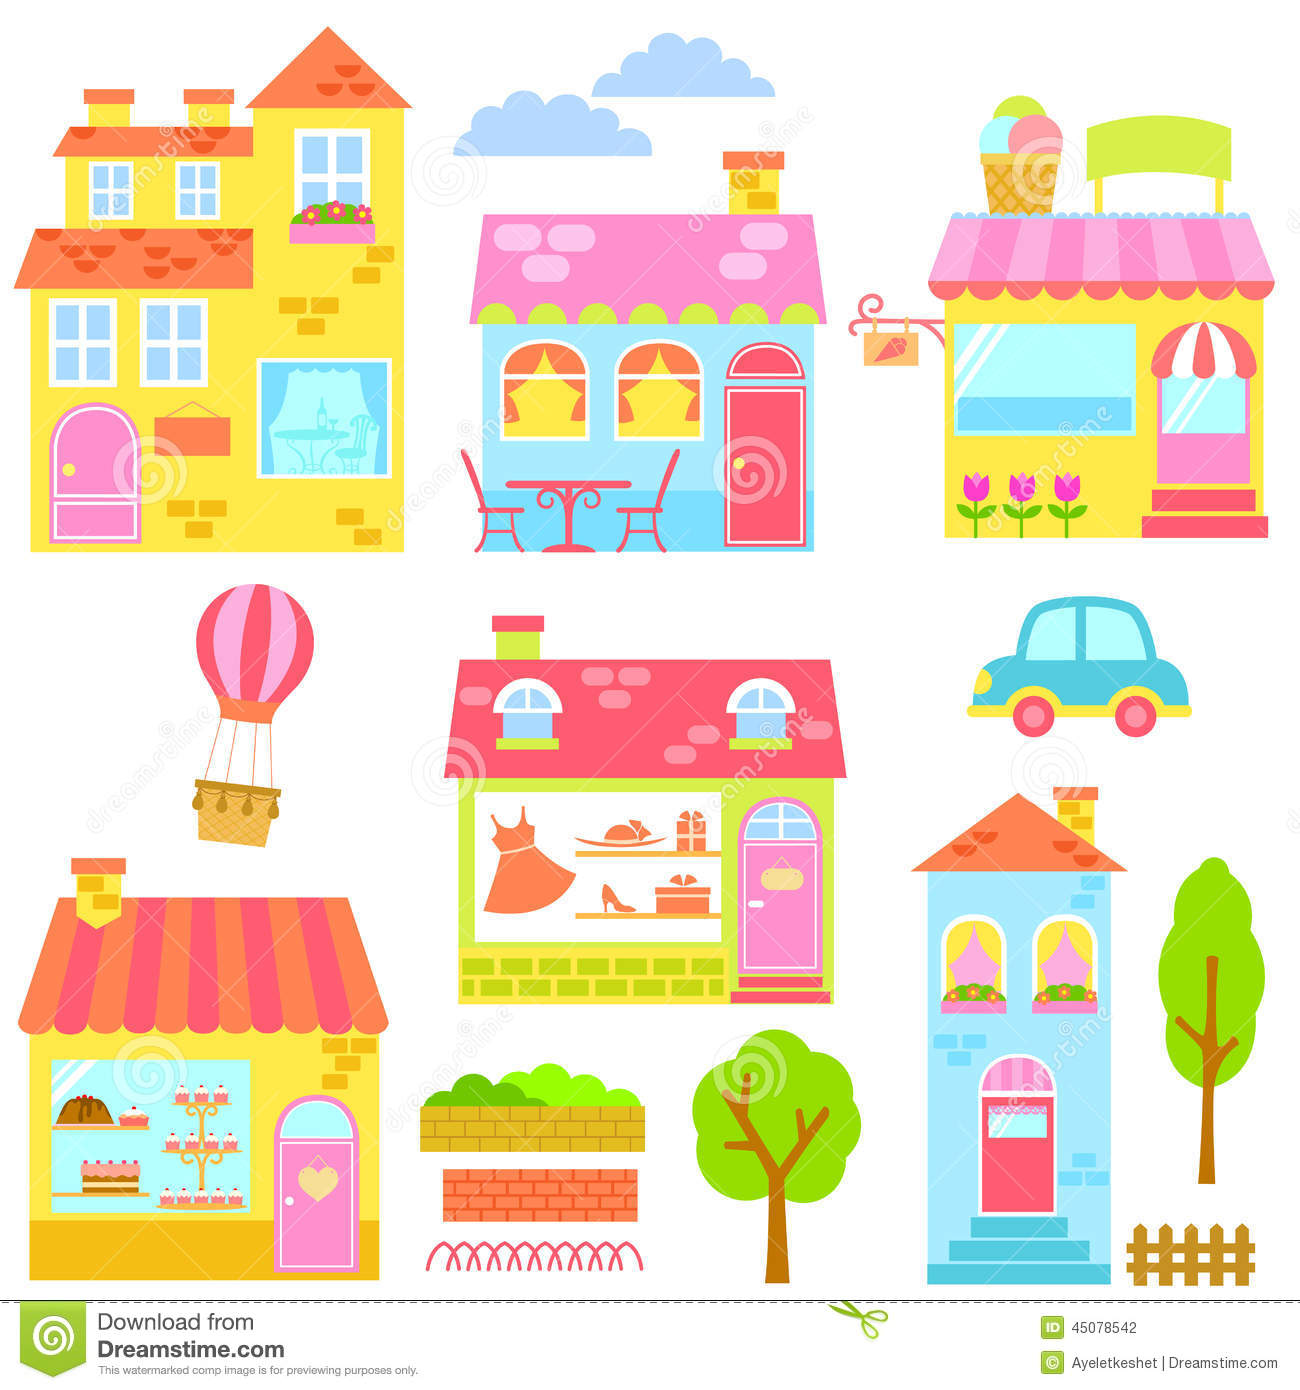 Garage Design additionally Eclairage Indirect Led moreover 2 Money furthermore Stock Illustration Colorful Houses Collection Shops Other Urban Elements Image45078542 furthermore 121111200666. on design of houses in namibia